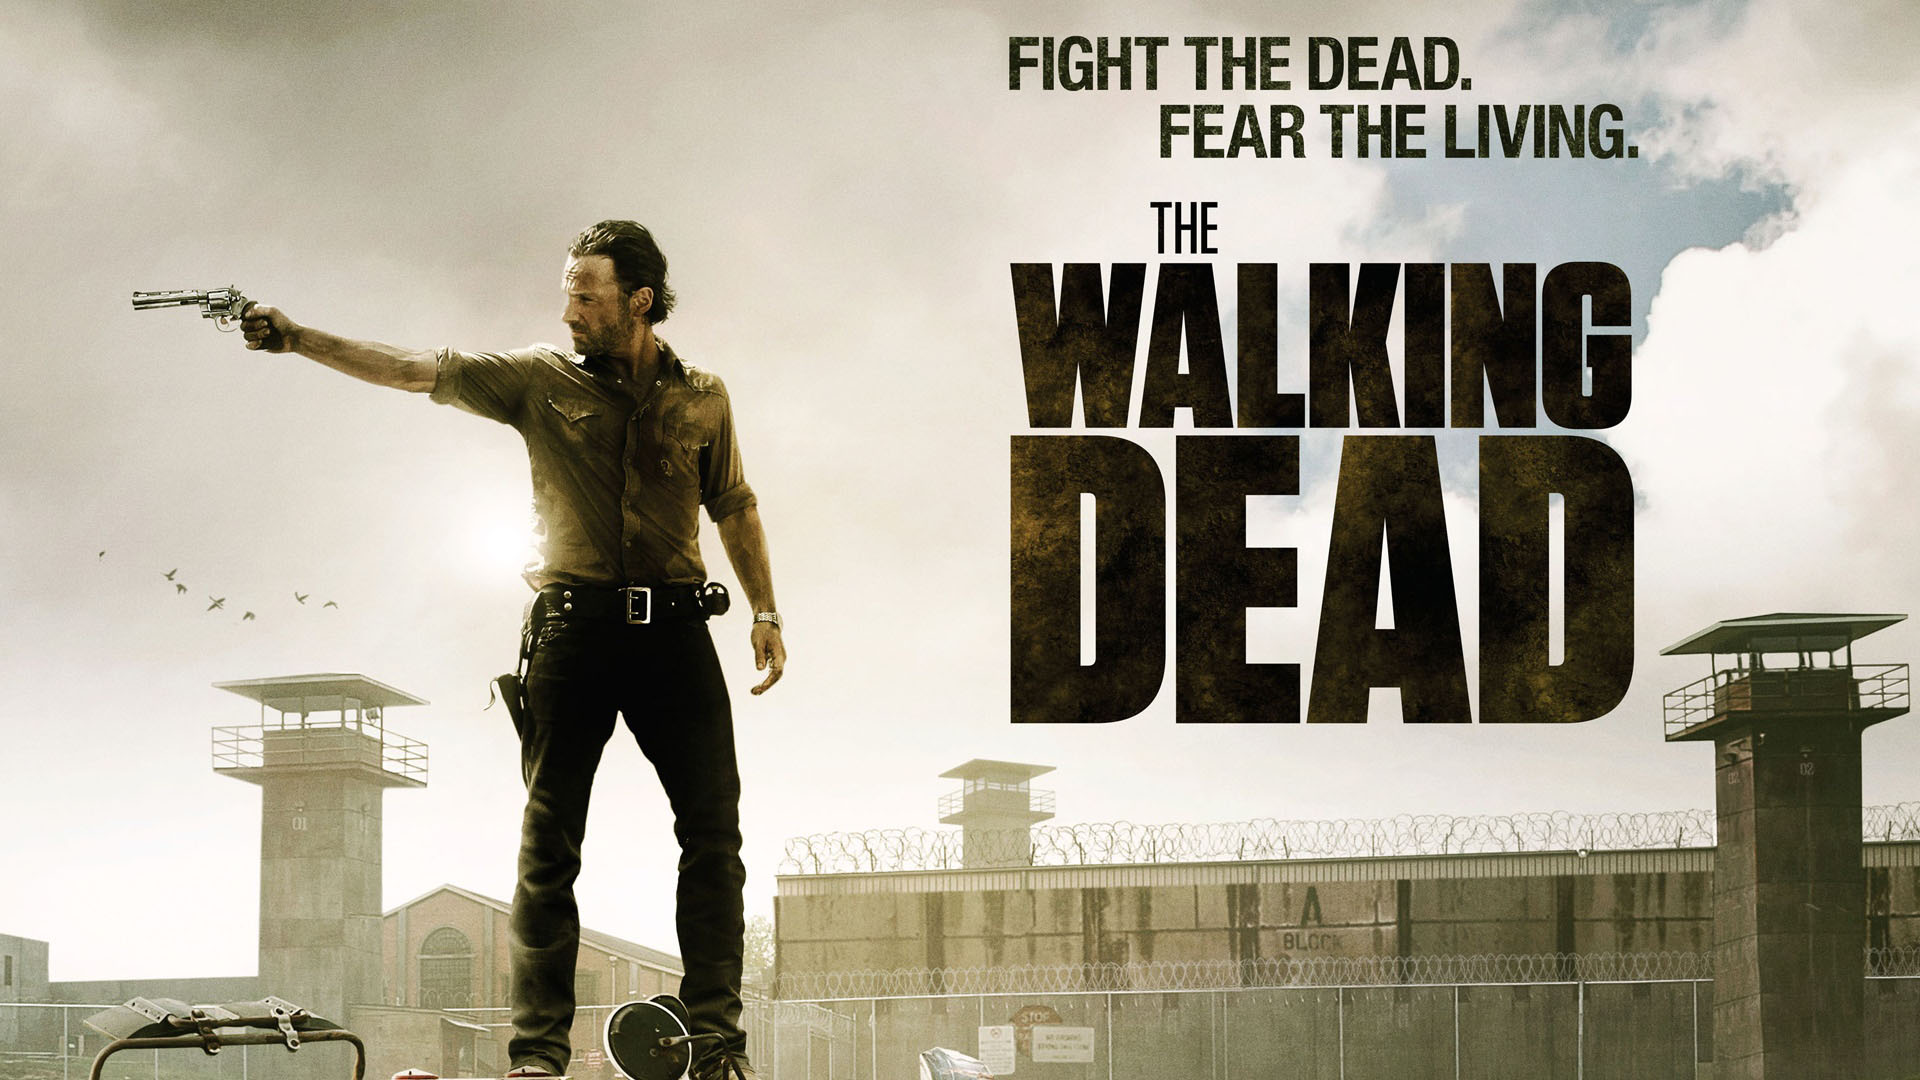 The Walking Dead Wallpaper Hd 1920x1080 3 Gww